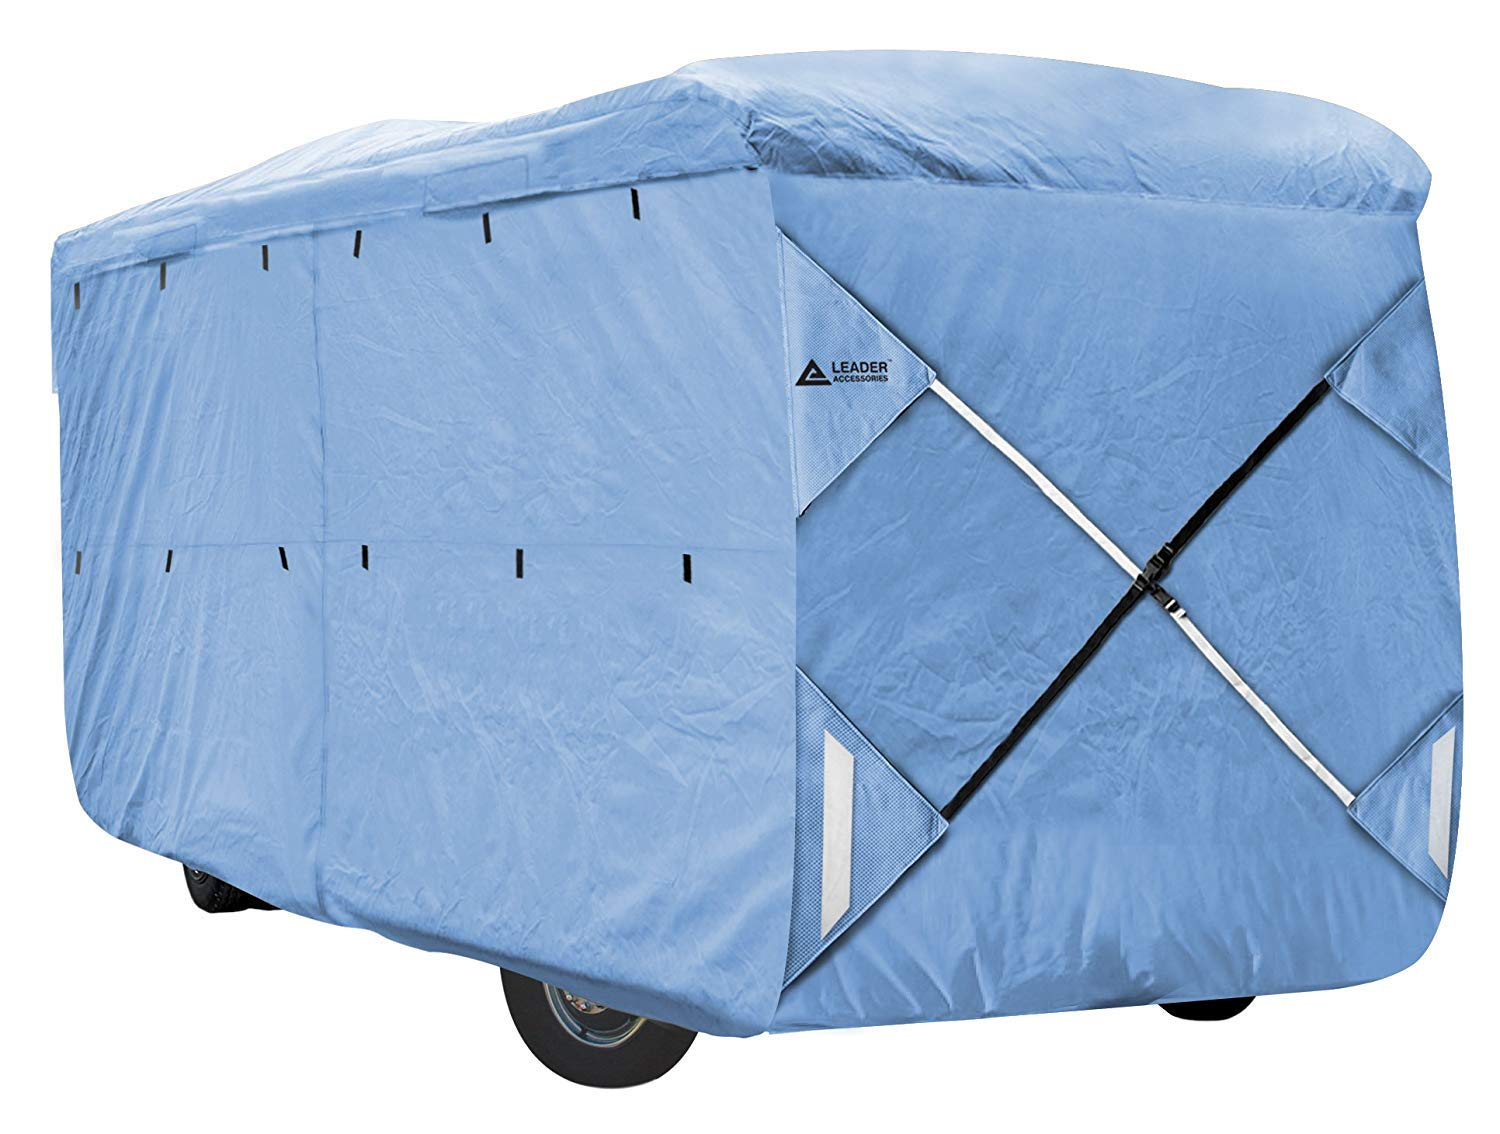 Leader Accessories Class A RV Cover SFS Polypro Fits for RV Motorhome (Fits 37'-40', Blue) by Leader Accessories